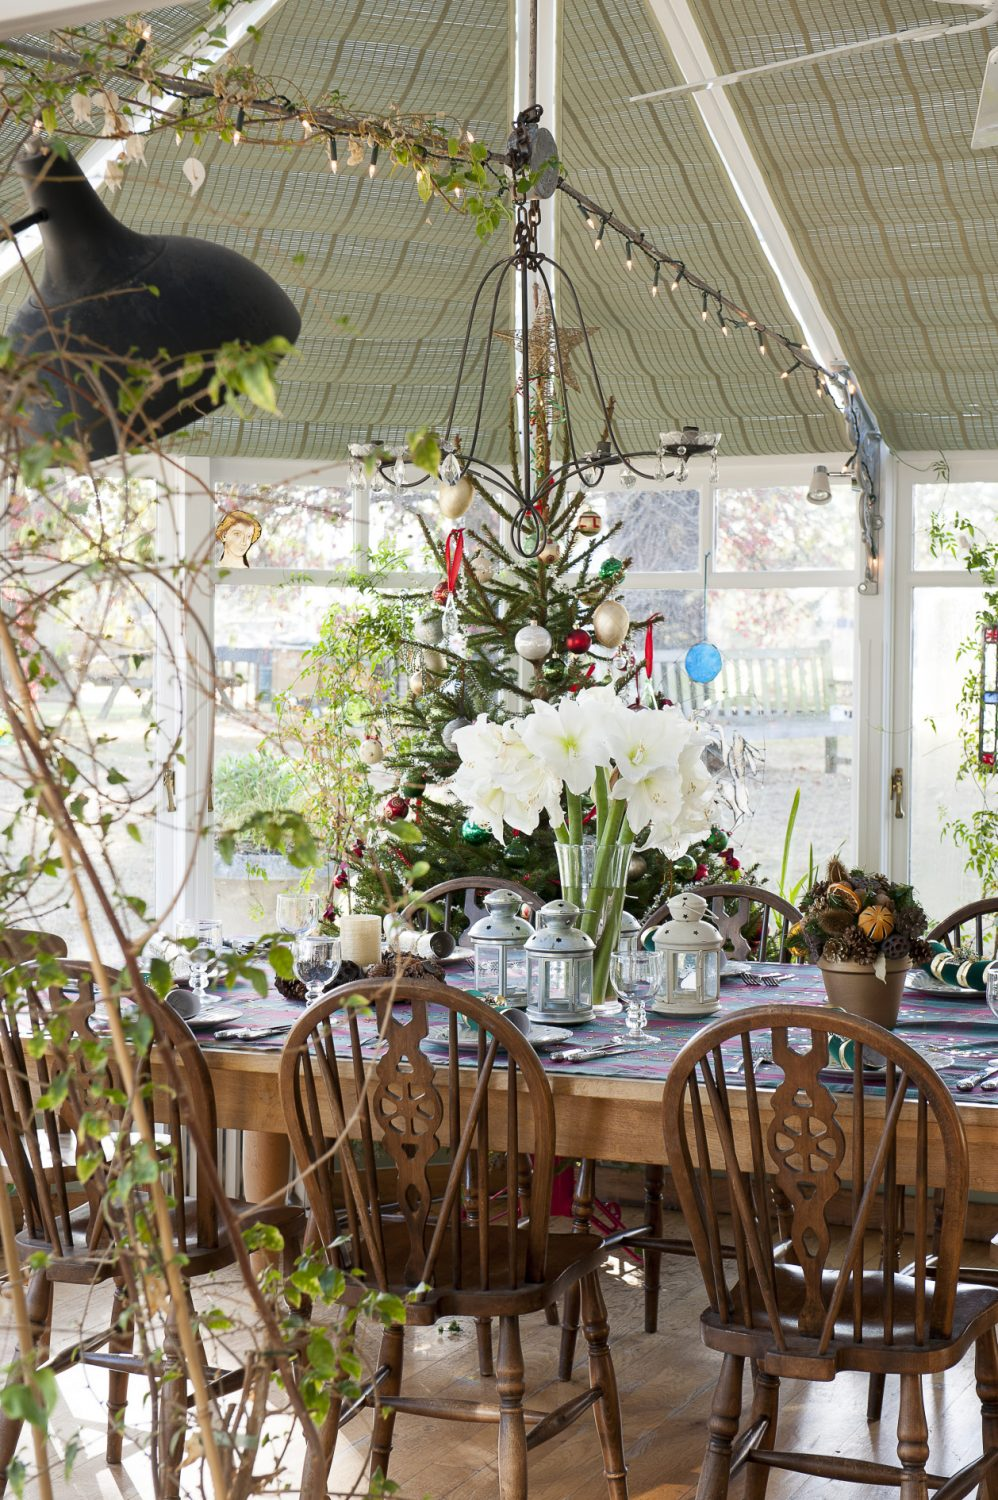 The plant-filled conservatory was added about 18 years ago and is where big family feasts are eaten